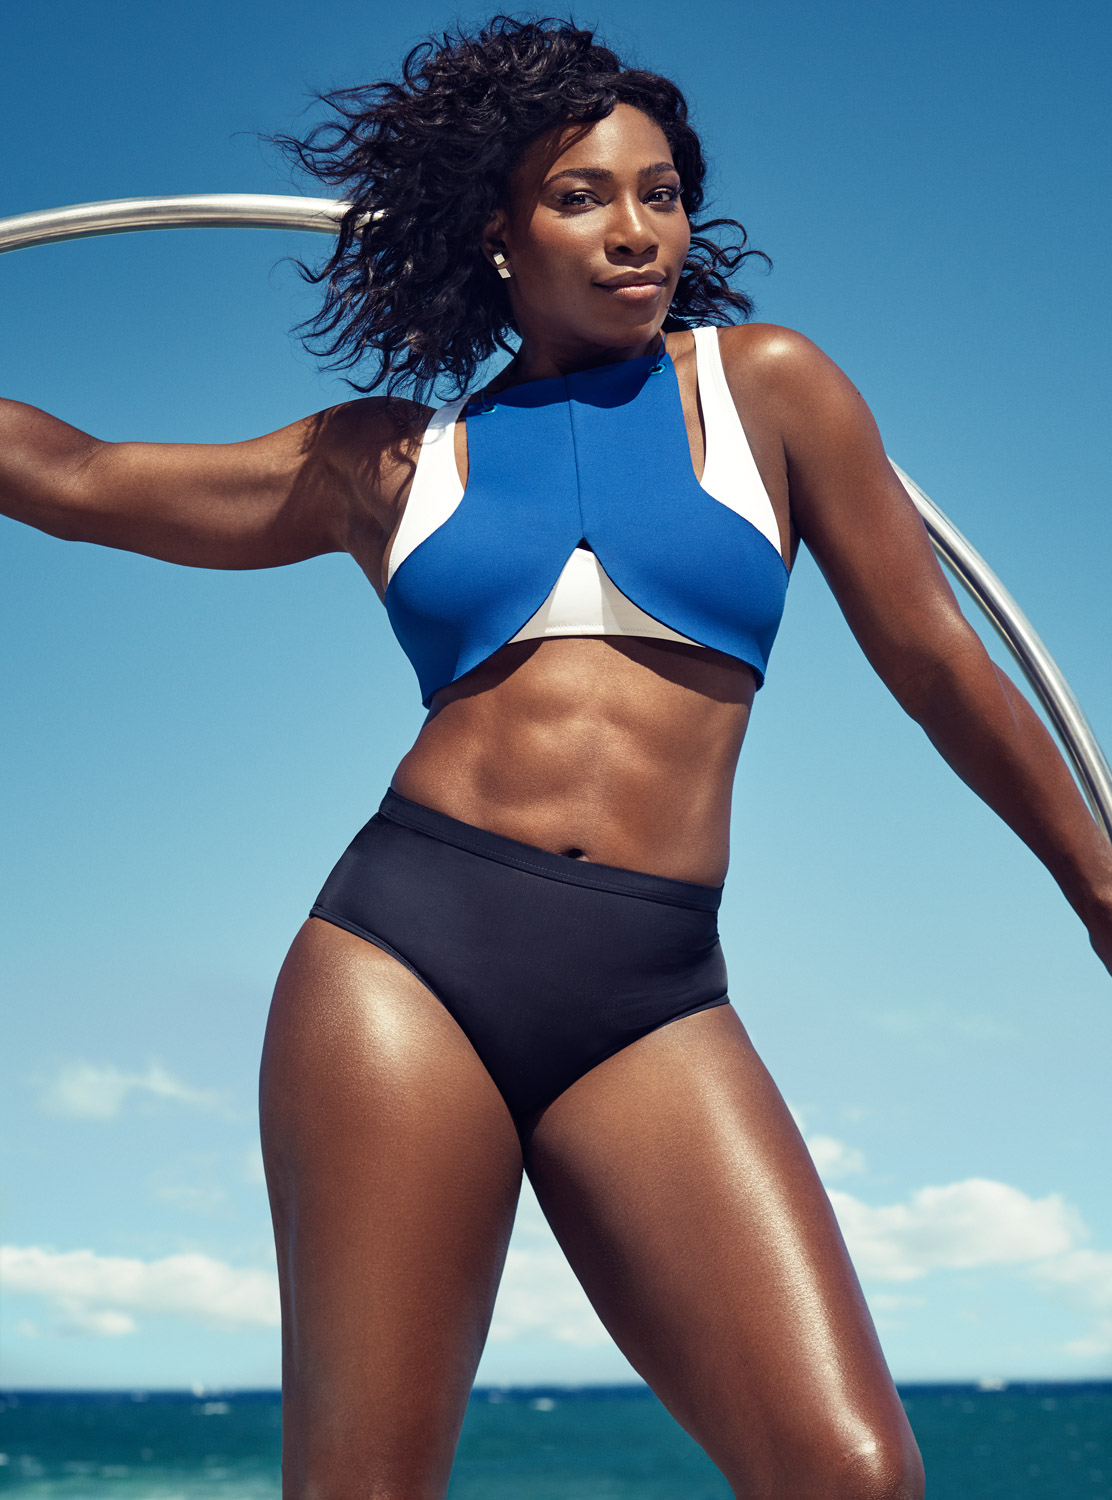 Wta Hotties Hot Shot Serena Williams Models Swimwear For -1622